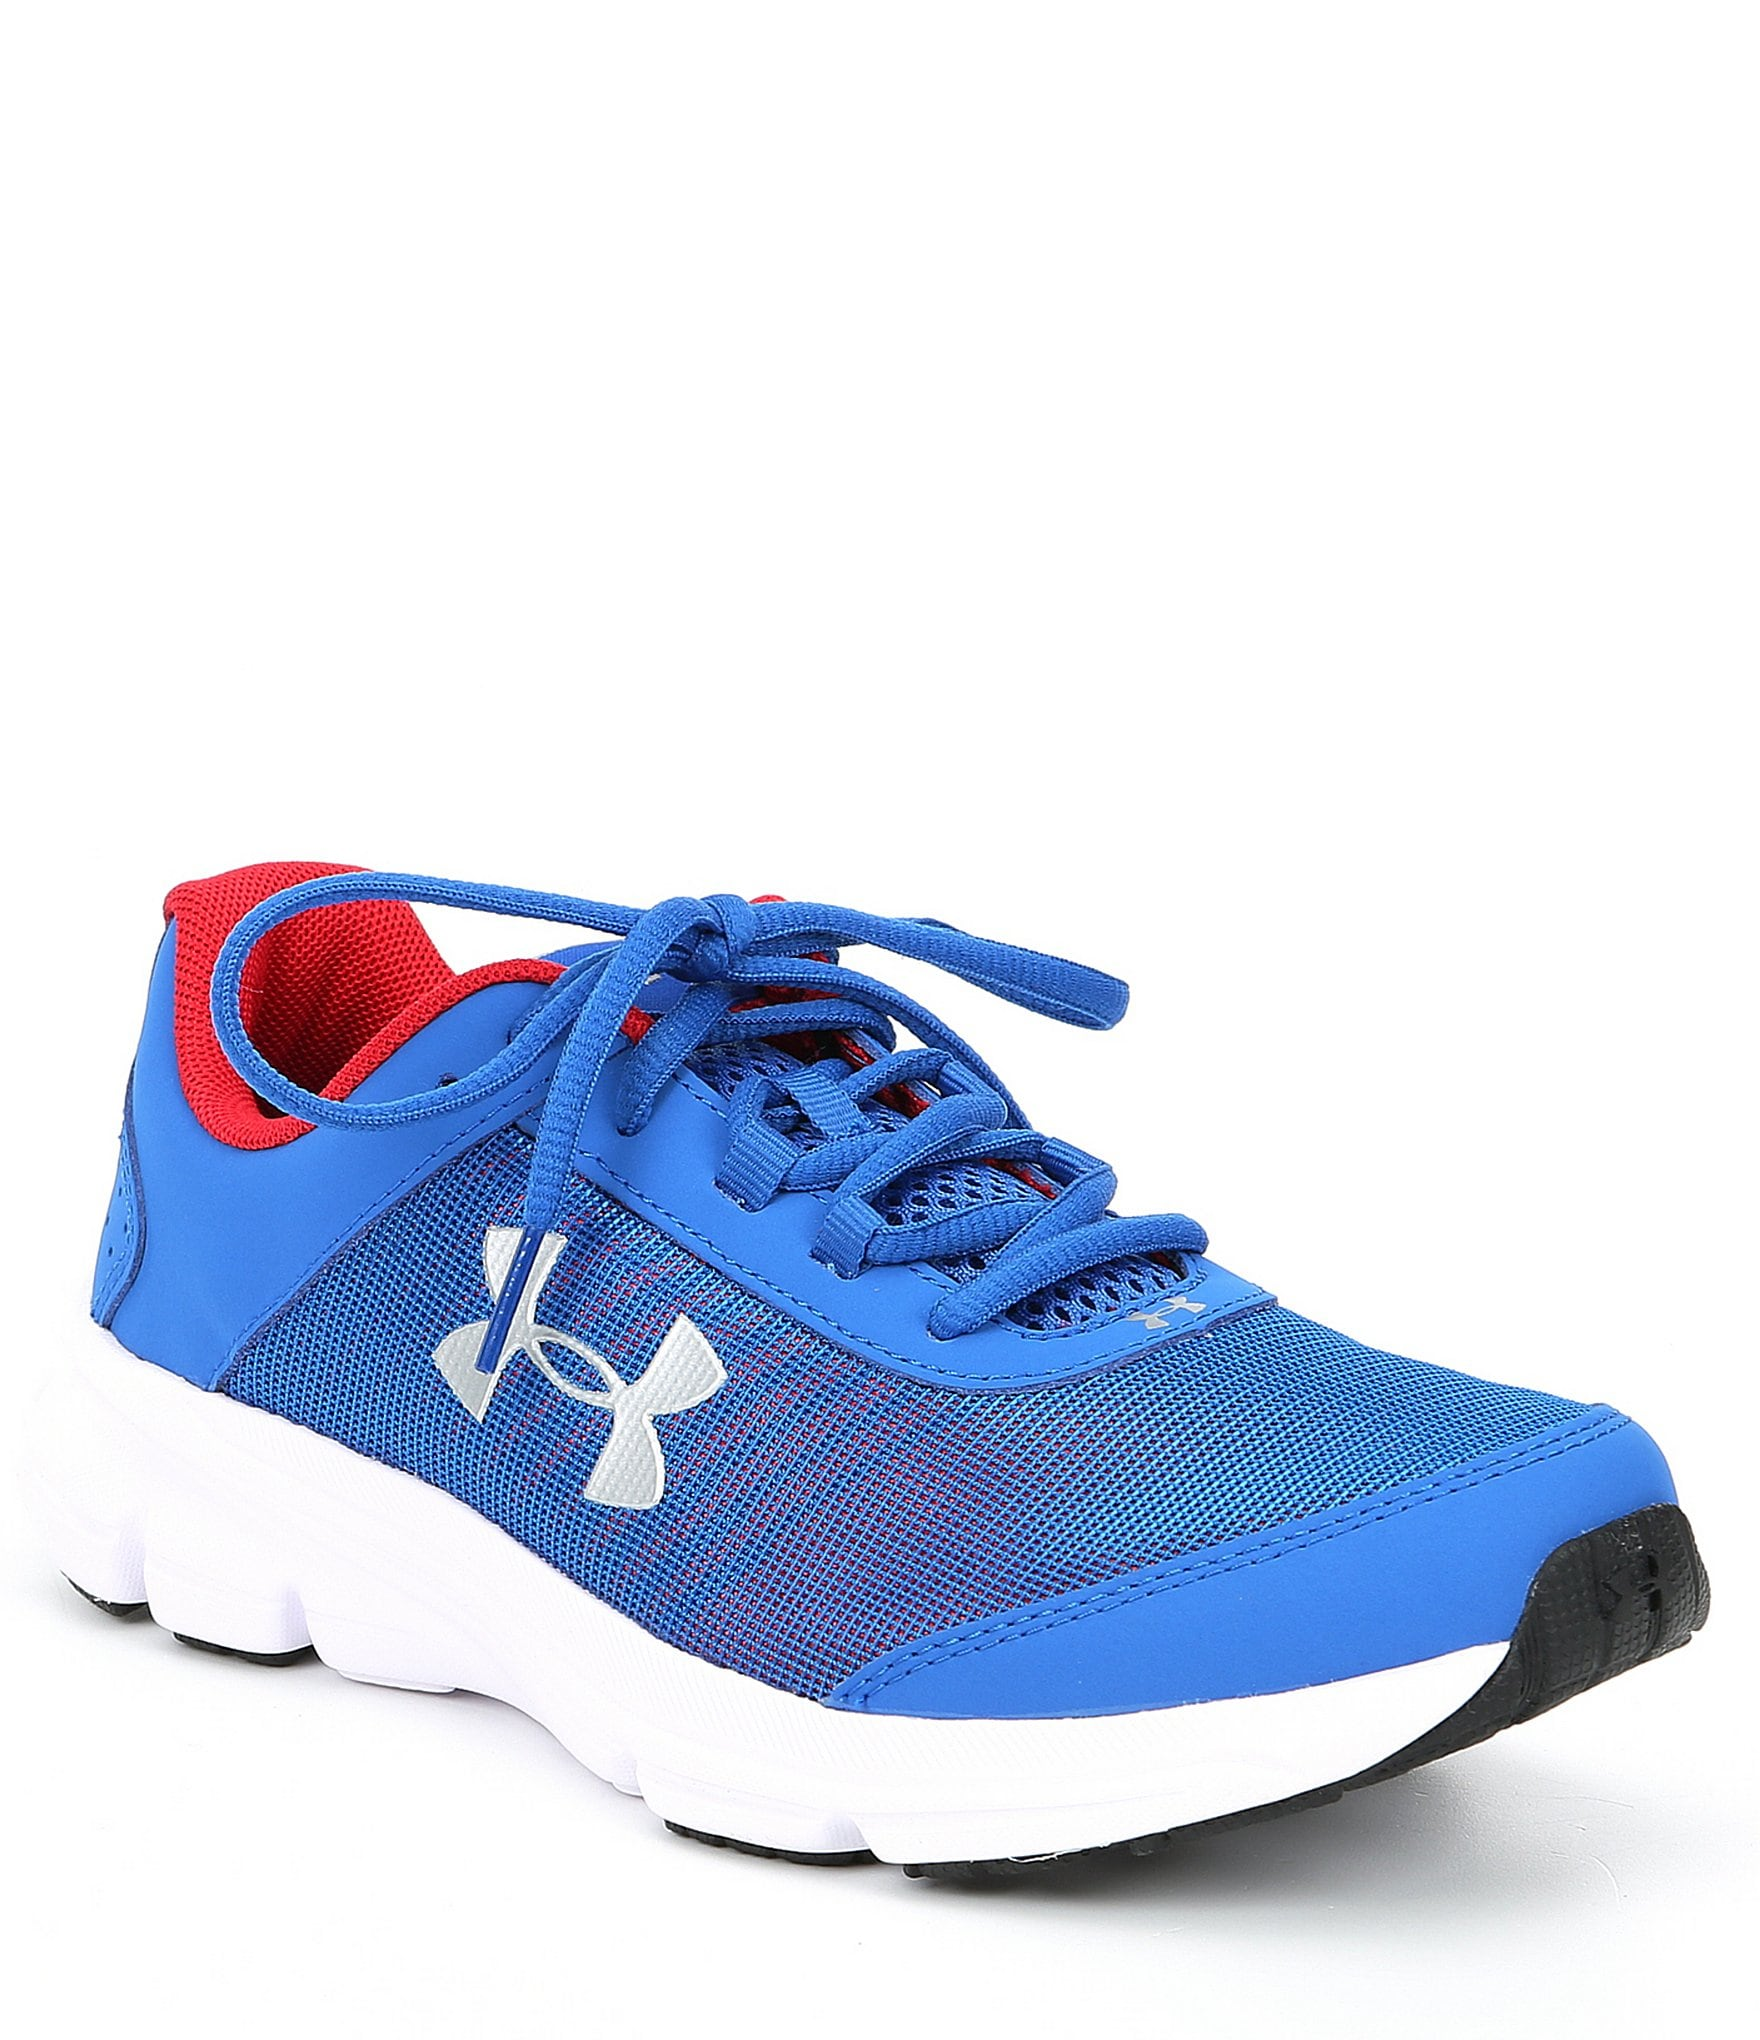 83d174049a1 Youth Boys' Athletic Shoes | Dillard's